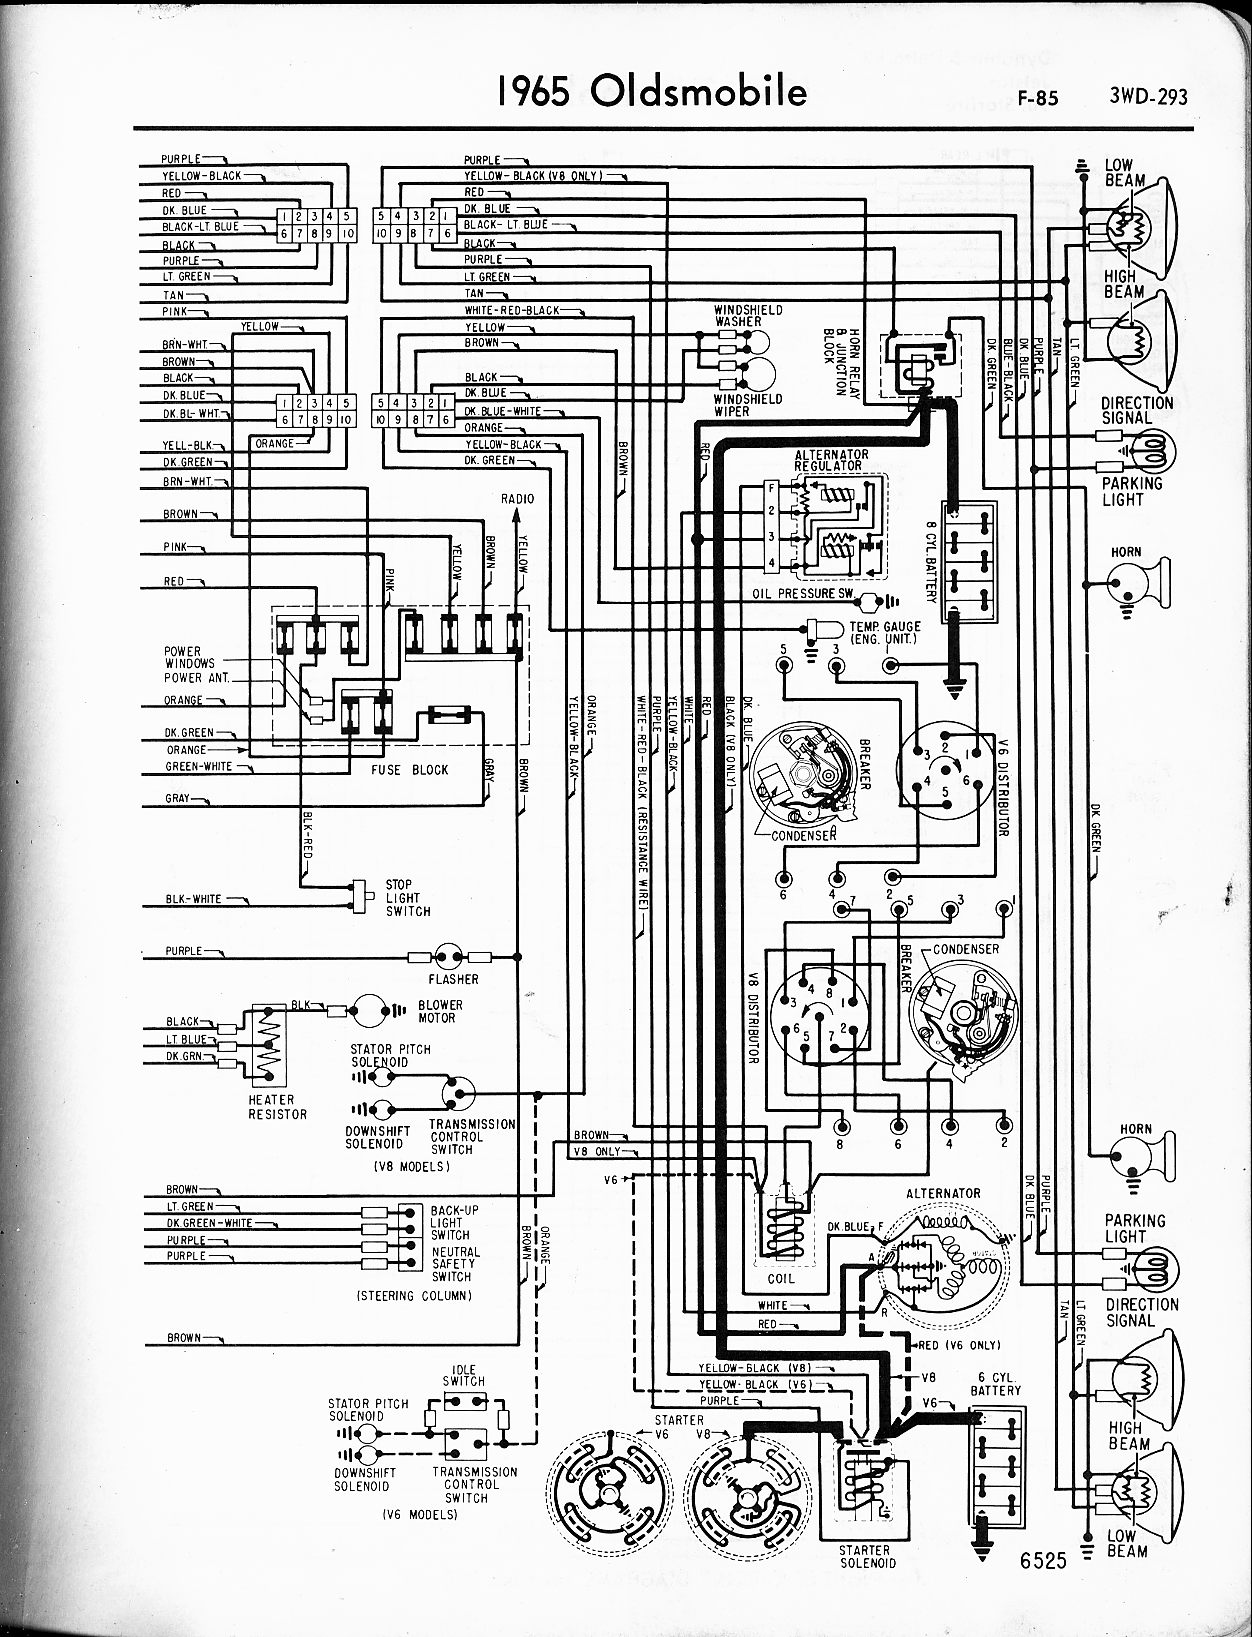 oldsmobile wiring diagrams the old car manual project Honda Wiring Diagrams MWire5765 293